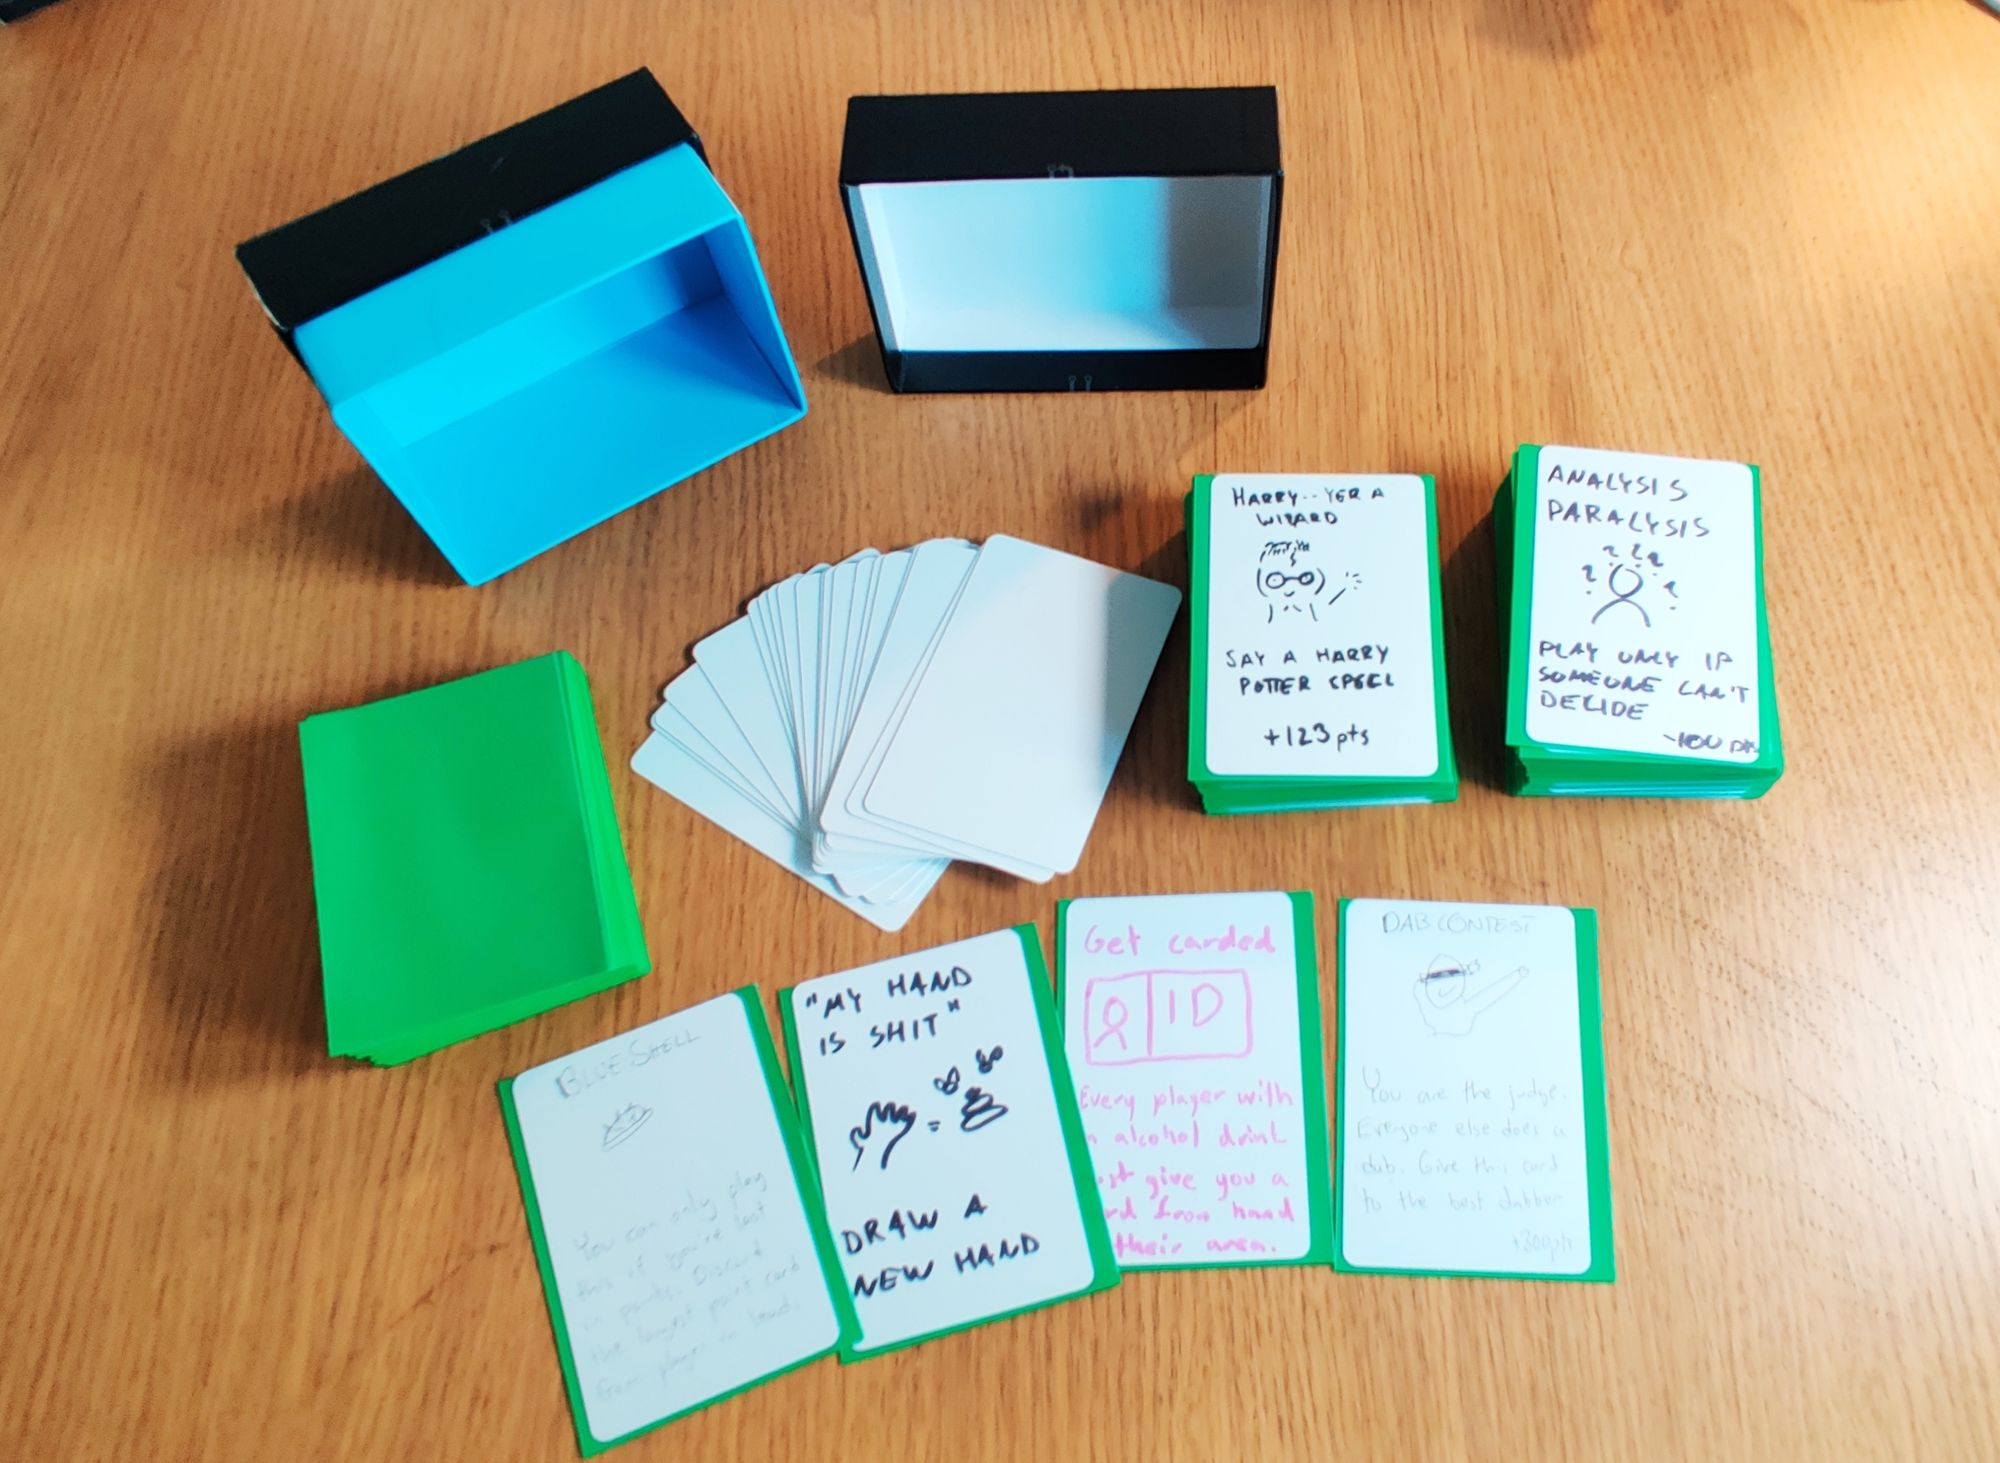 A collection of empty green sleeves, empty cards and two stacks of cards with handwritten text and pictures